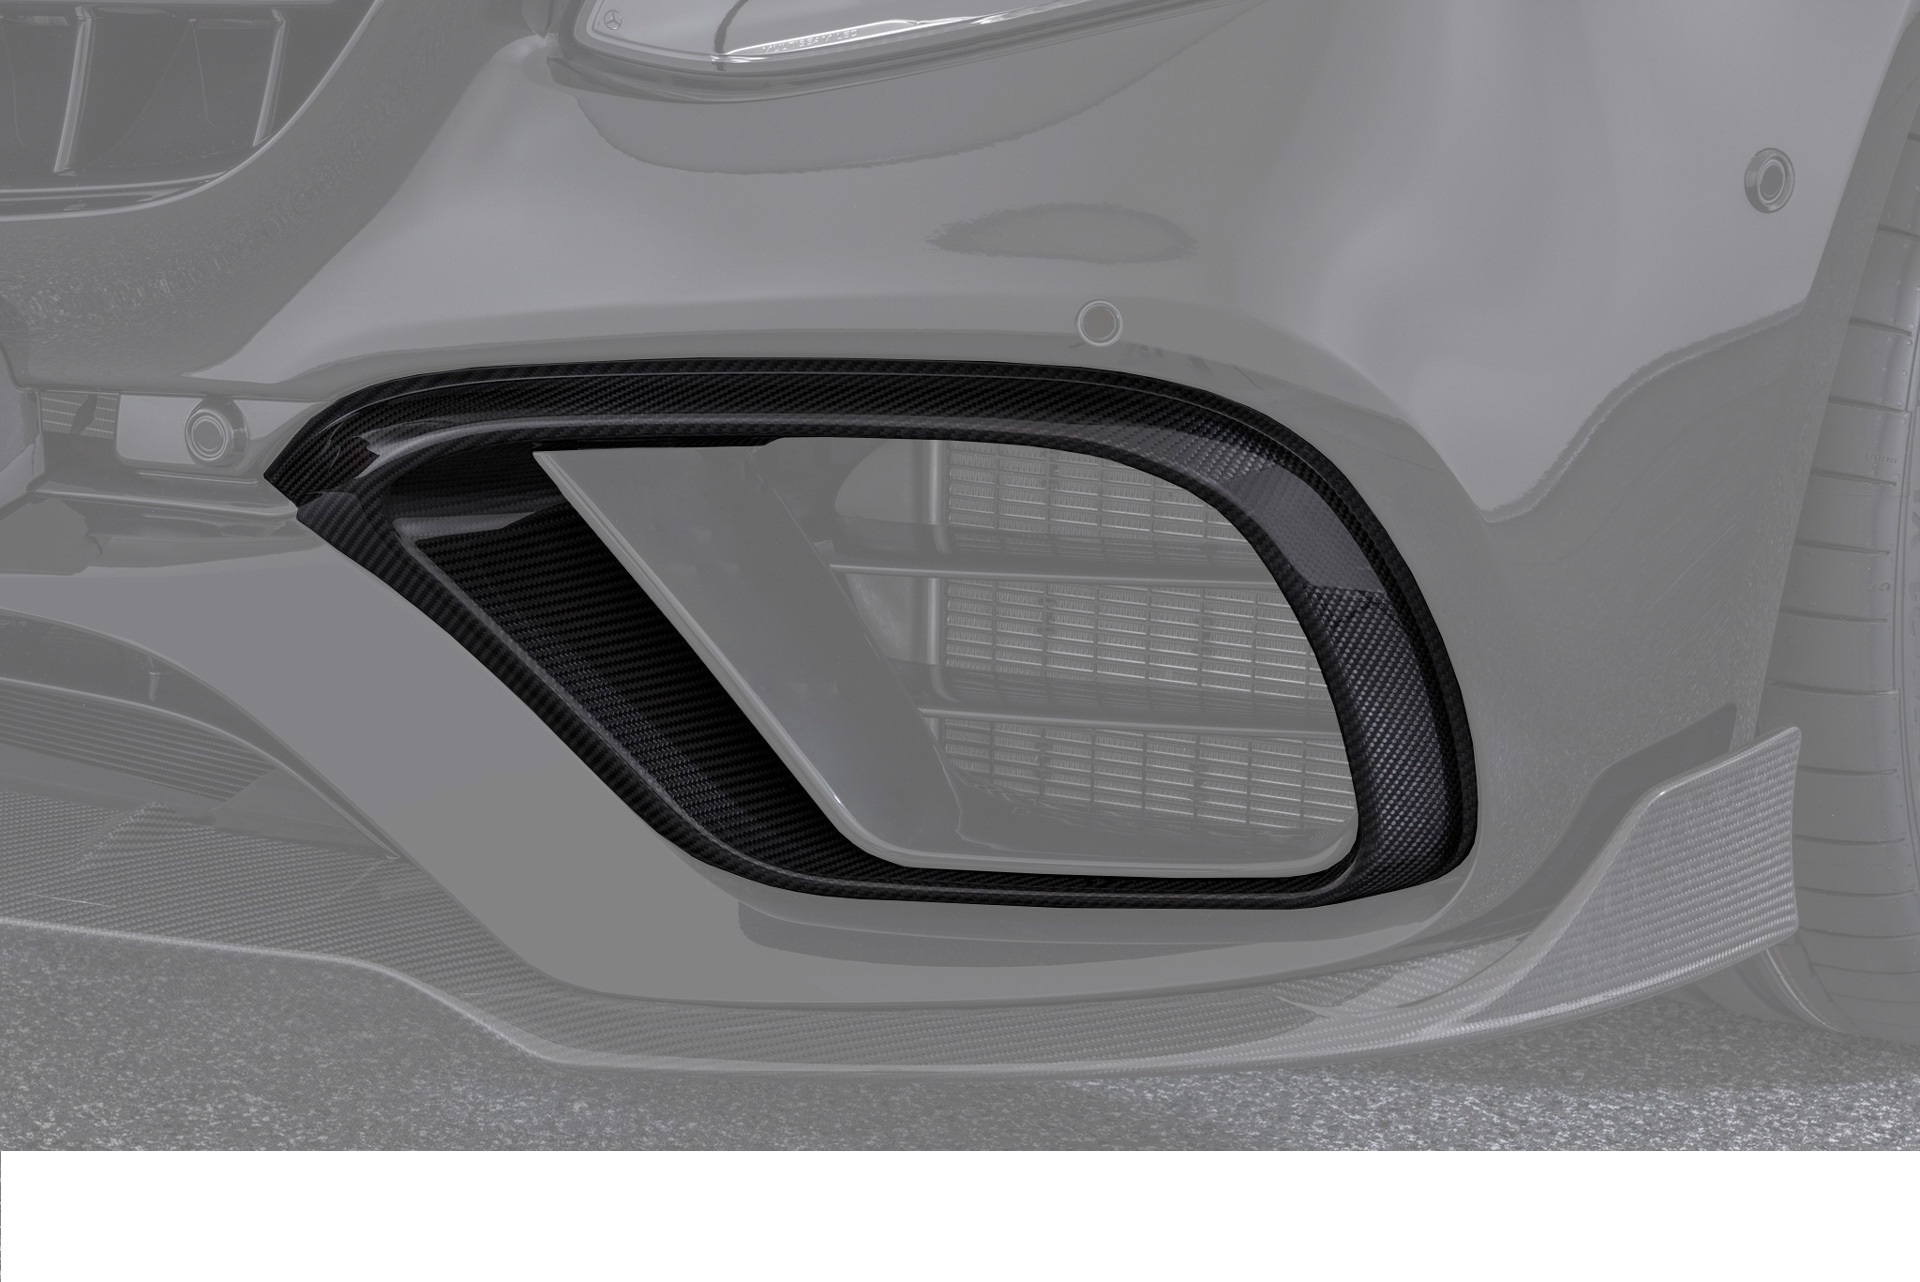 Hodoor Performance Carbon fiber inserts in the air intakes 63 AMG Brabus Style for Mercedes E-class W213